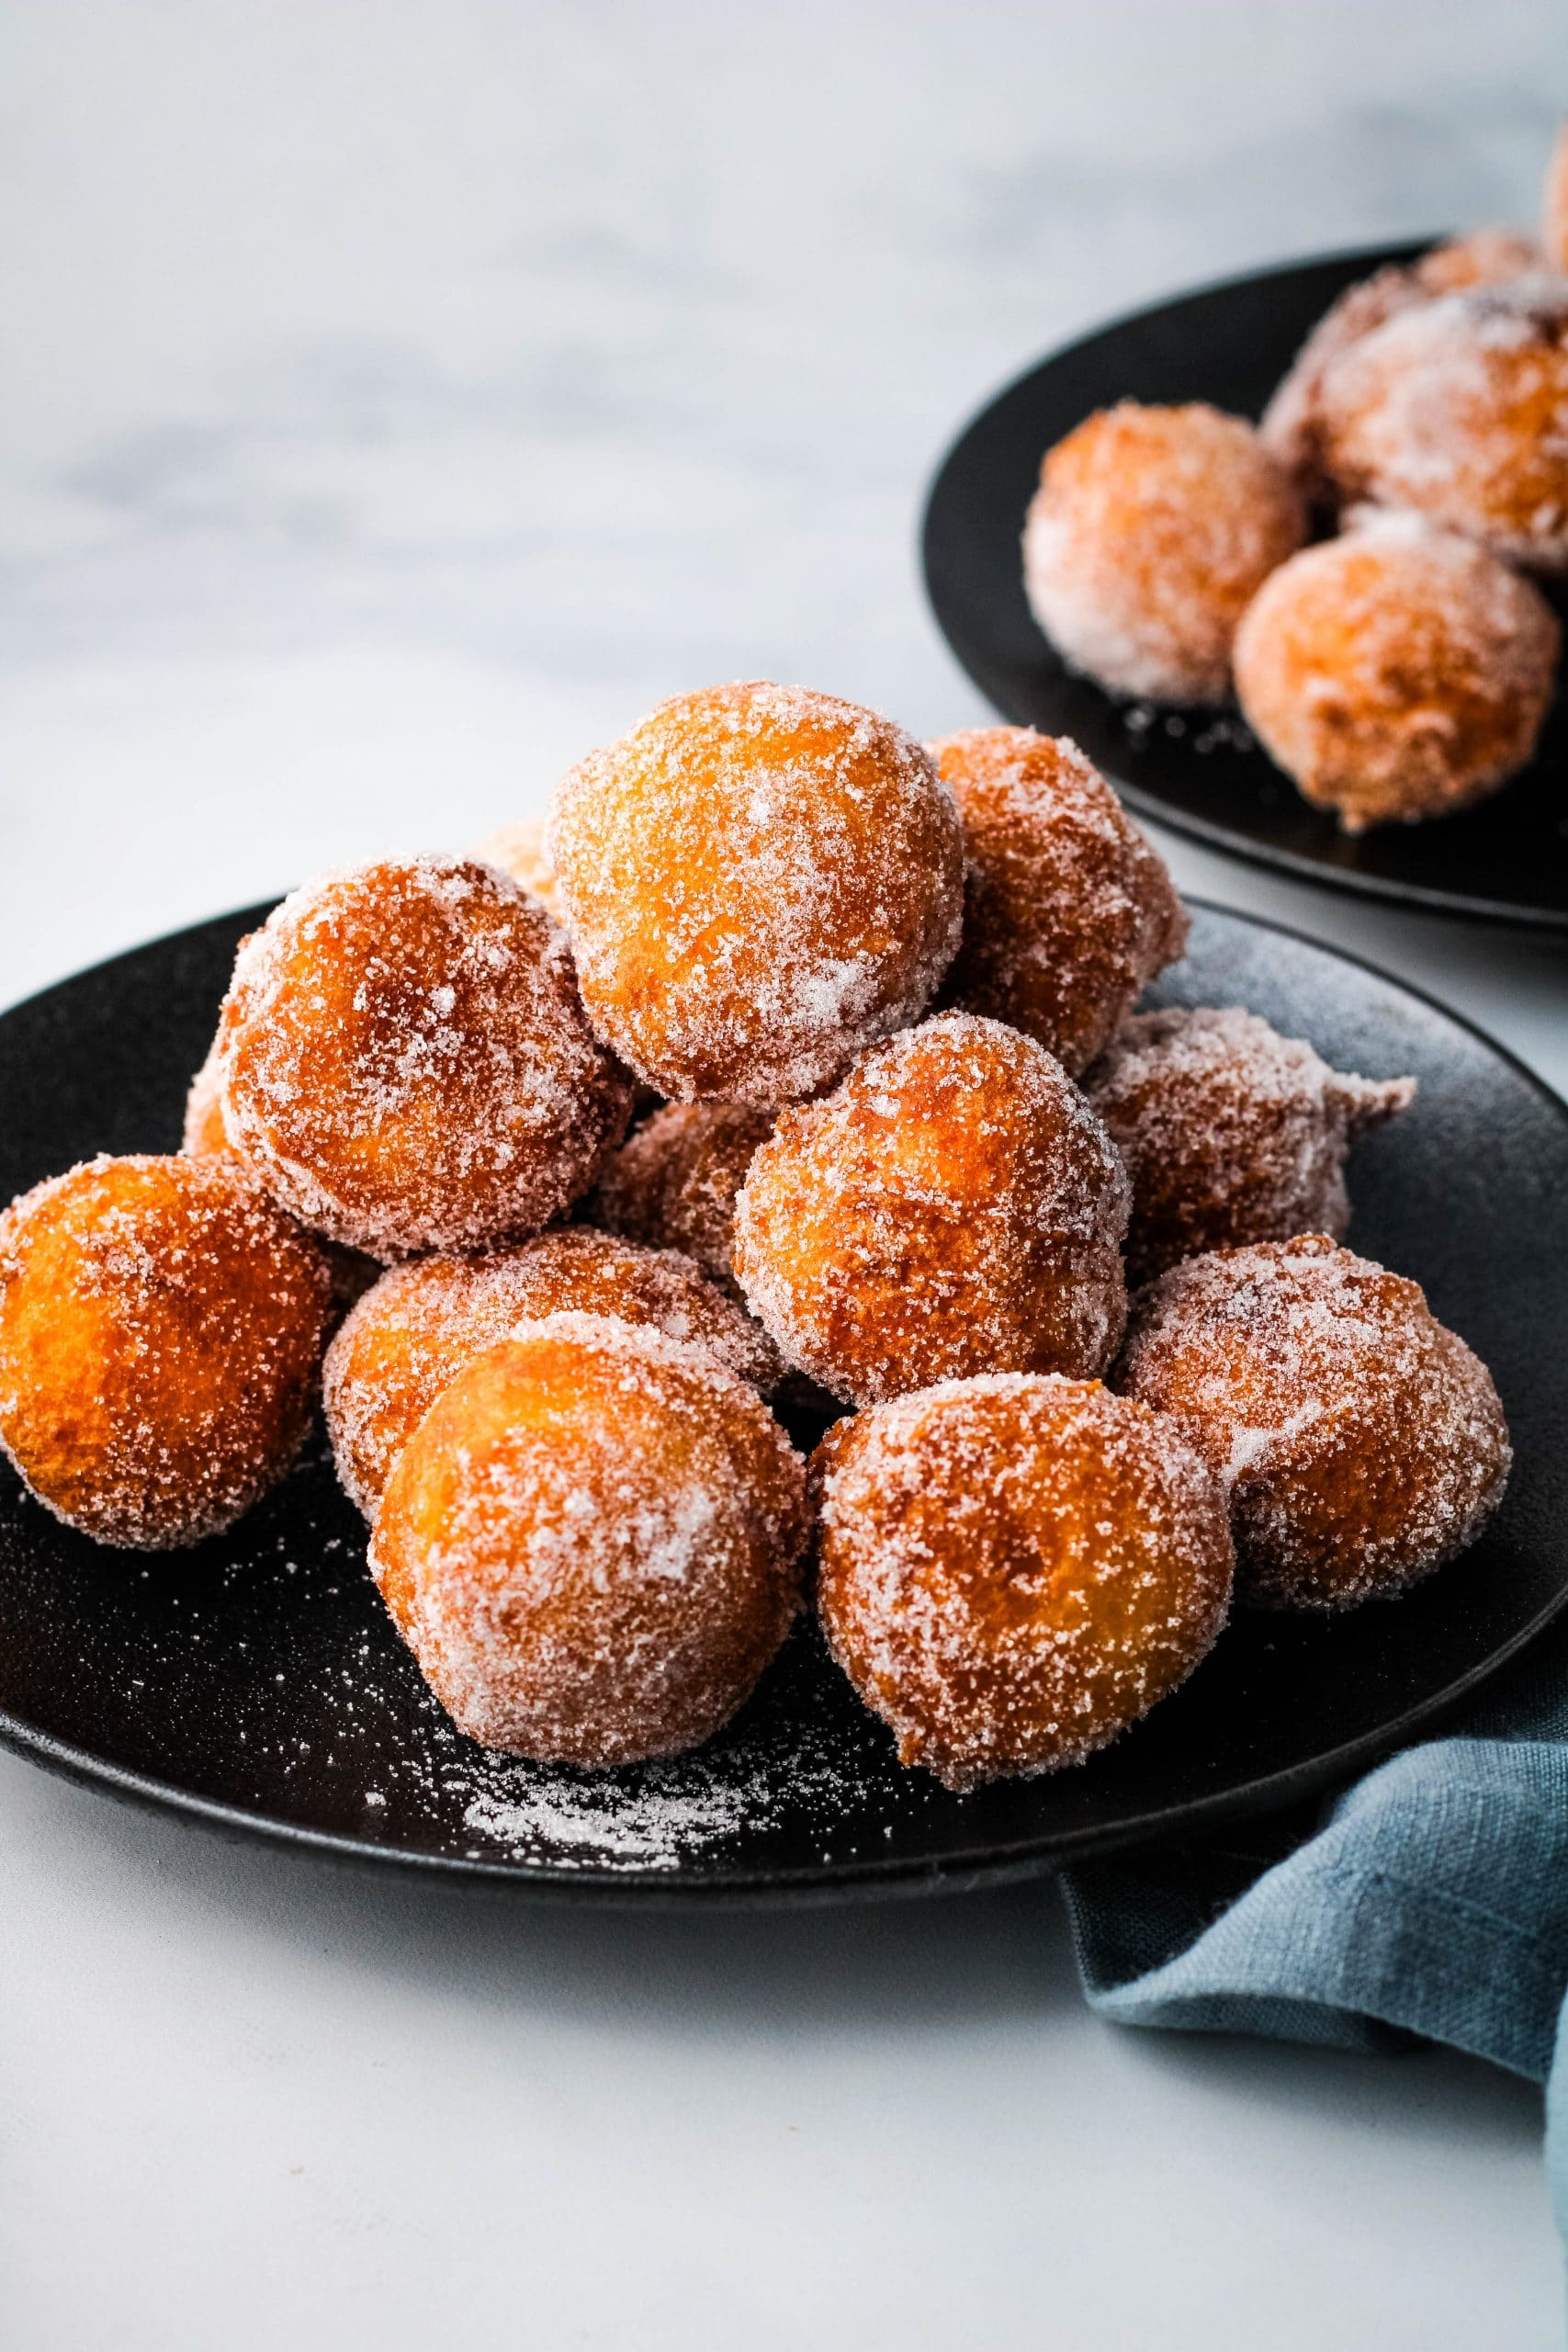 mochi donuts on a black plate